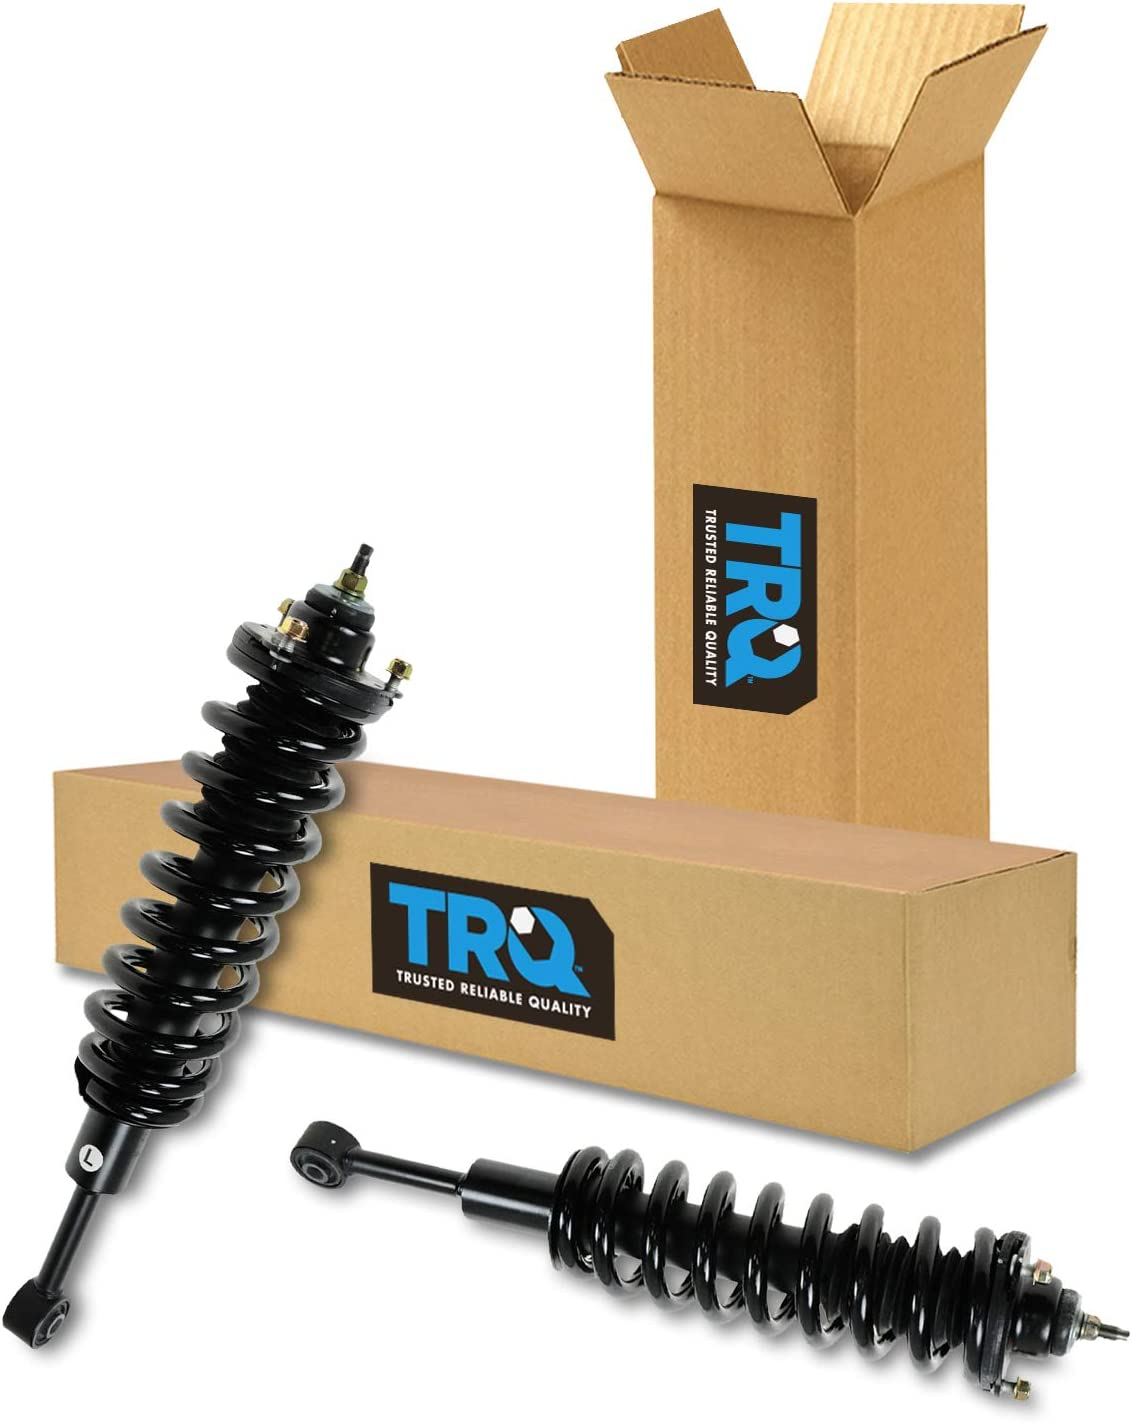 2003-2009 Toyota 4 Runner Except X-REAS Suspension System 2007-2009 Toyota FJ Cruiser DTA 70020 Full Set 2 Front Complete Struts with Springs and Mounts 2 Rear Shocks 4-pc Set